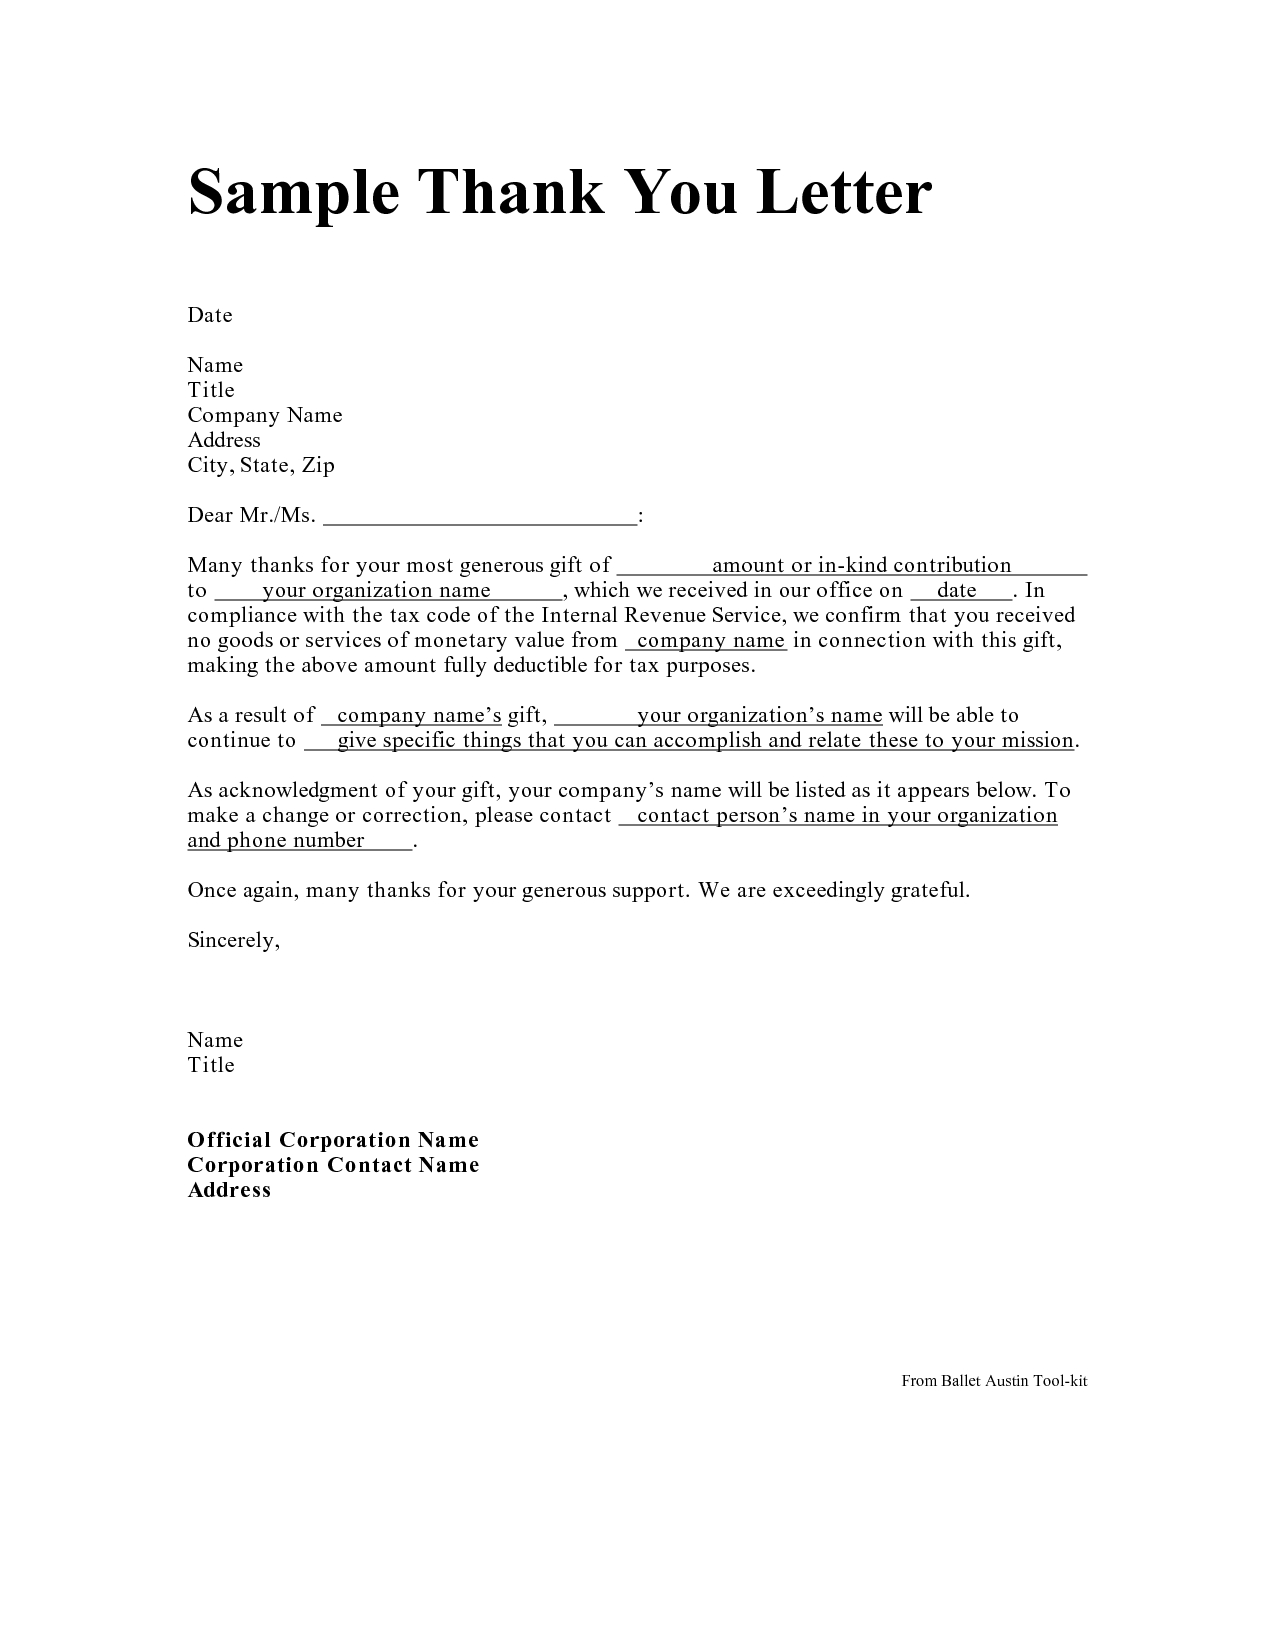 Donation Request Letter Template Word - Personal Thank You Letter Personal Thank You Letter Samples